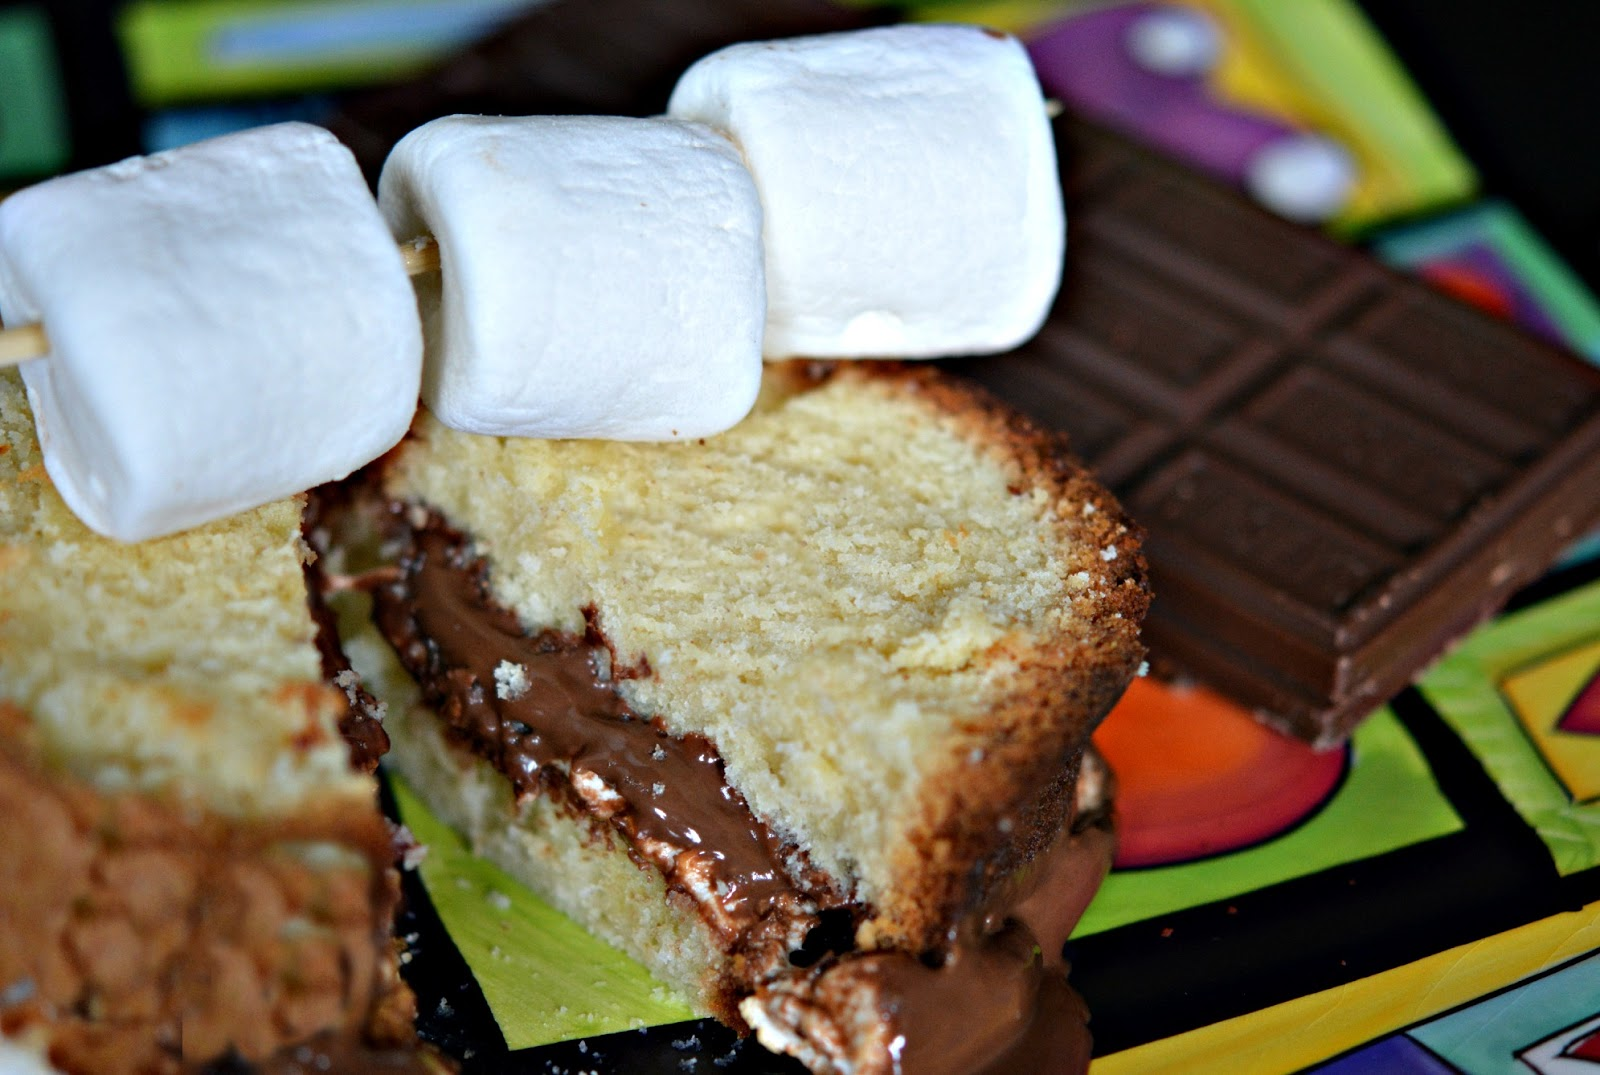 bounty chocolate: S'MORES CREAM CHEESE POUND CAKE